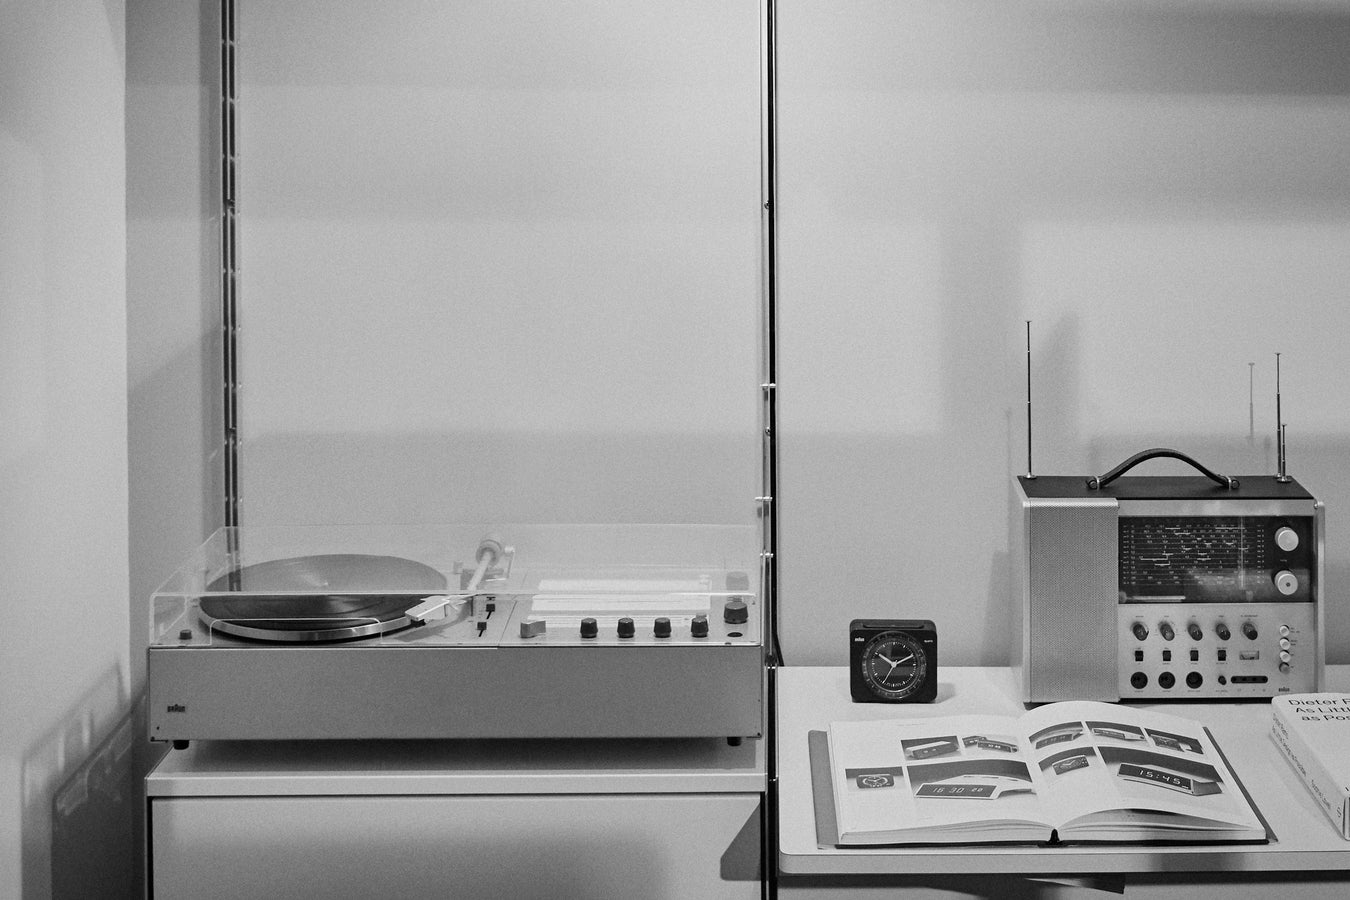 Dieter Rams: Less, But Better